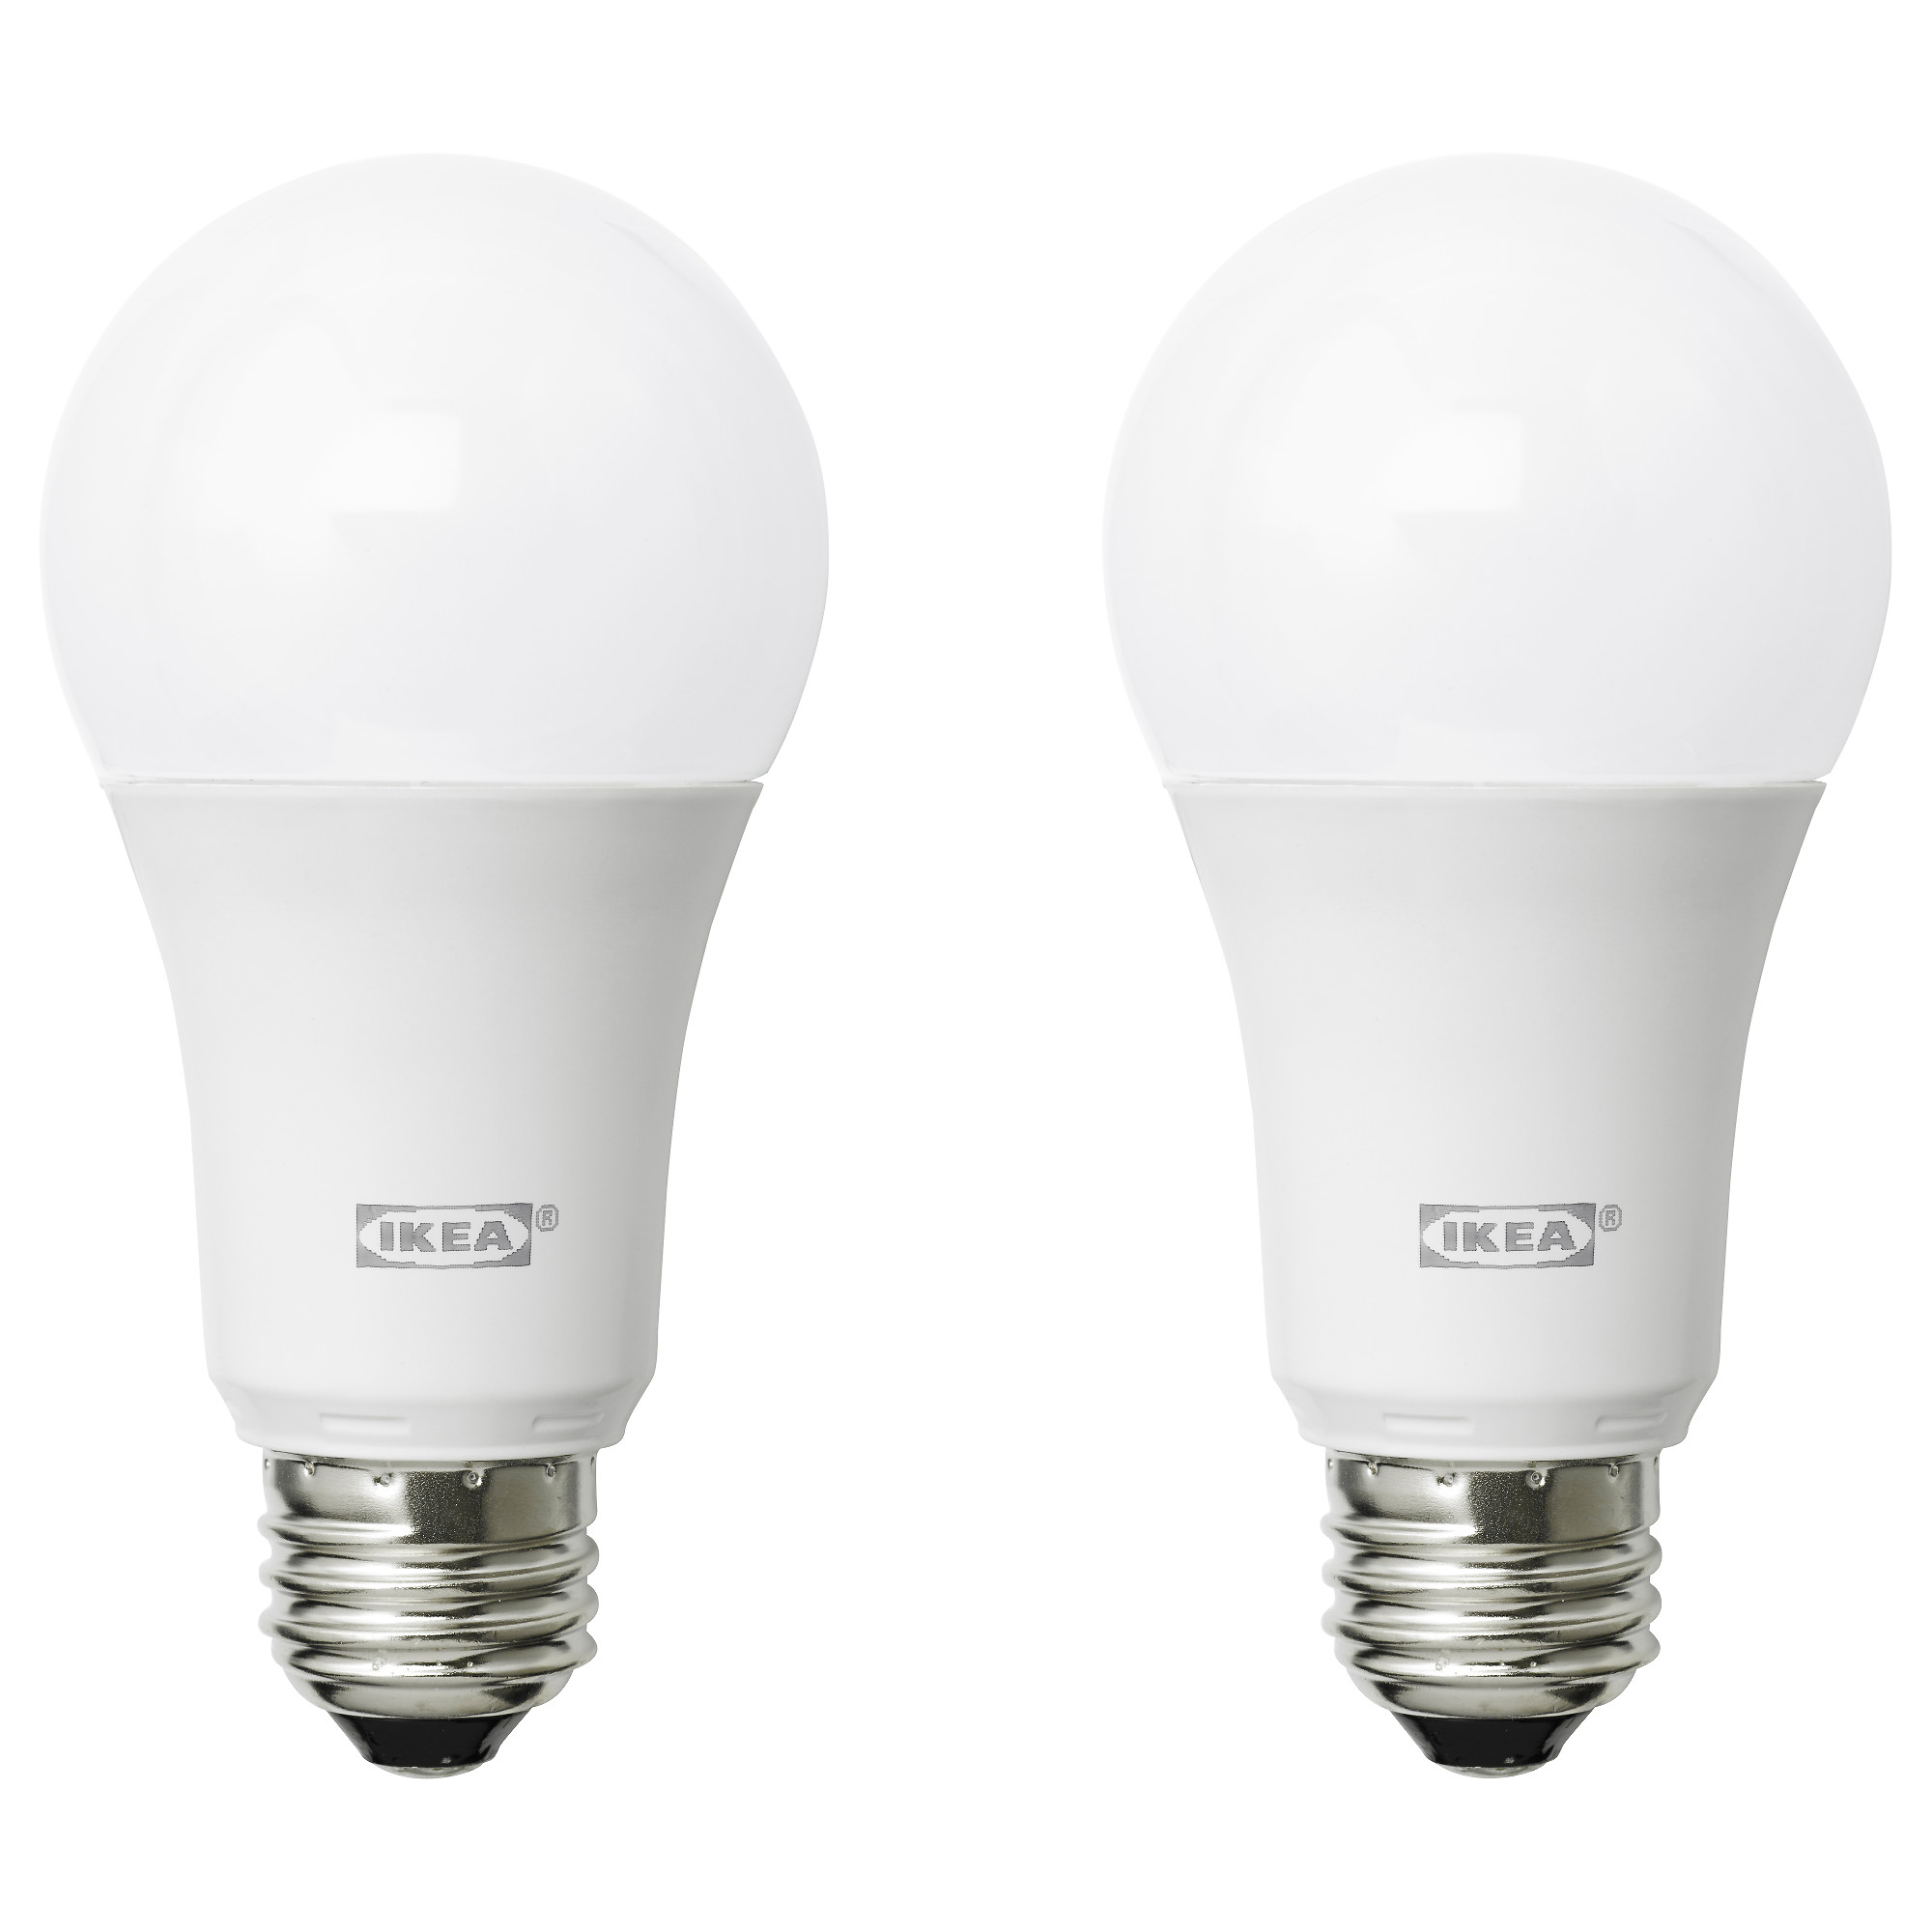 RYET LED bulb E26 1000 lumen, globe opal Luminous flux: 1000 Lumen Power: